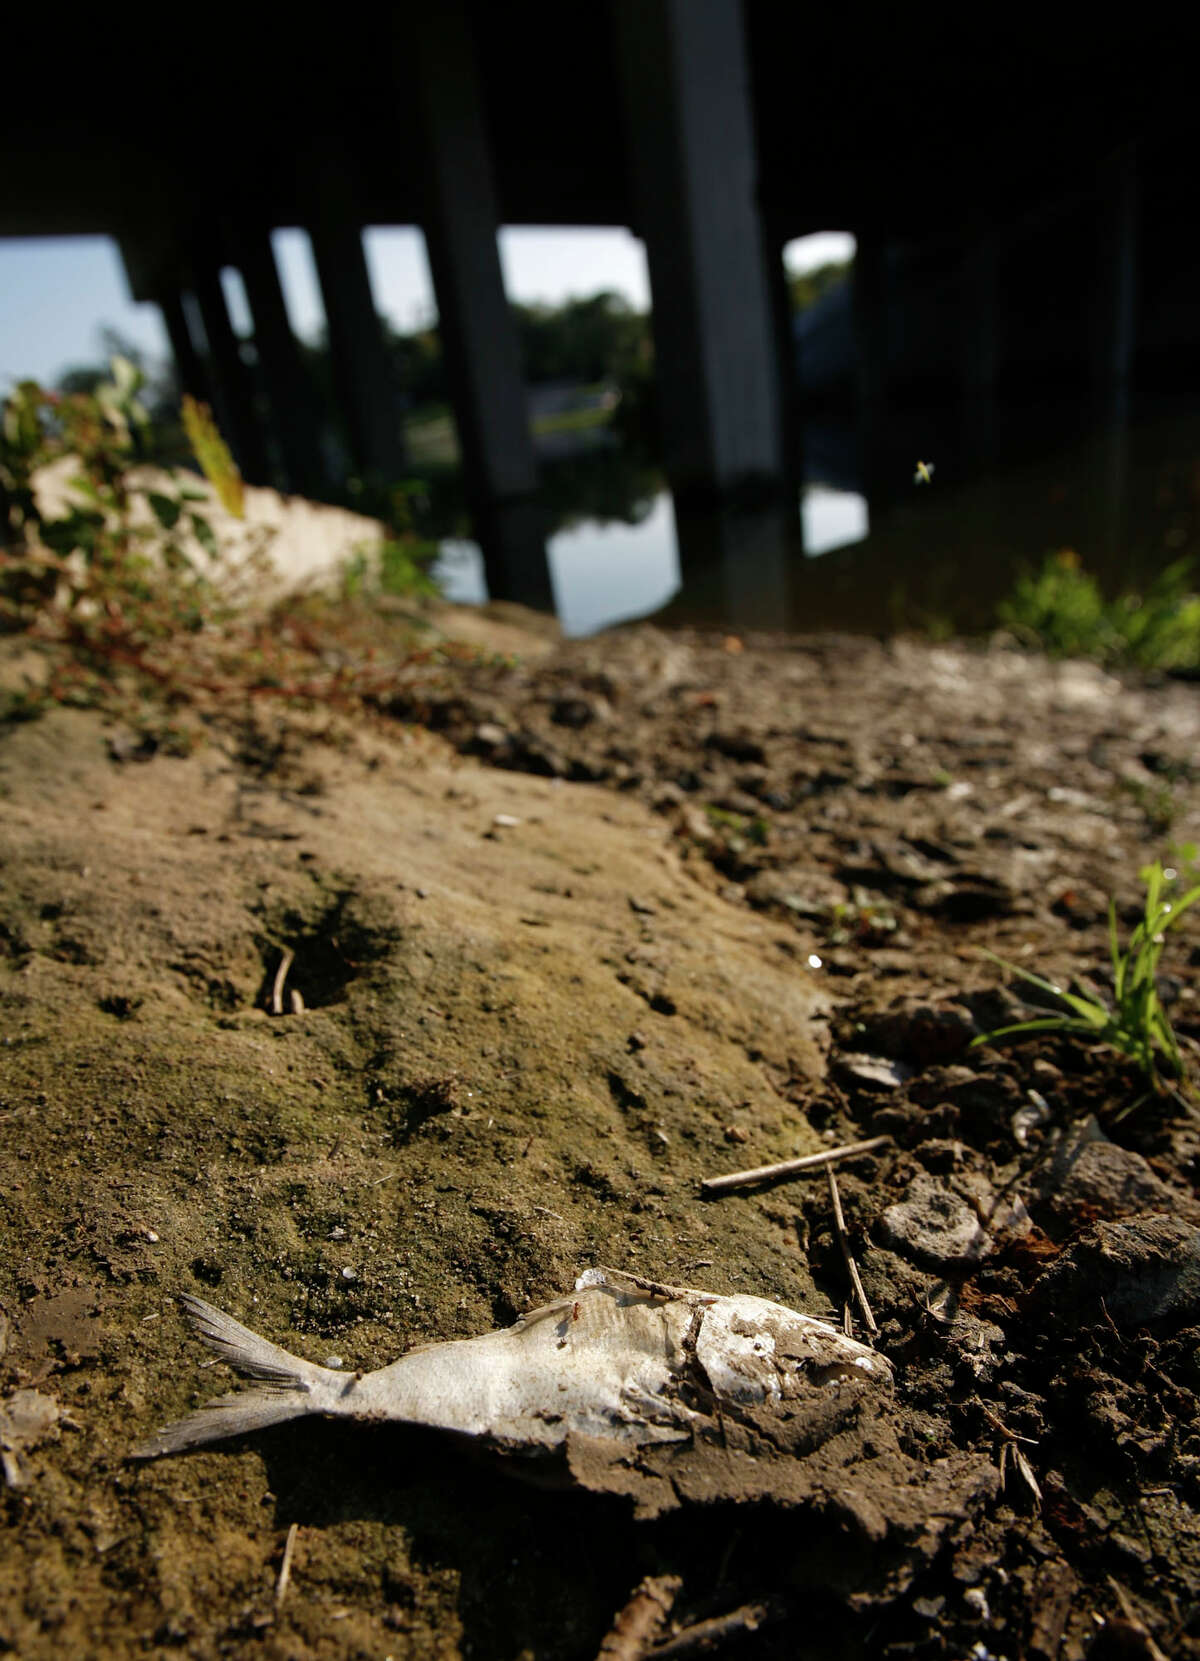 A dead fish is seen near the Market Street Road bridge over the San Jacinto River, which runs over the San Jacinto waste pit, on Thursday, Nov. 12, 2009, in Channelview. The 20-acre site contains toxic water as it was put on the Superfund list for the nation's most polluted places by the EPA. ( Julio Cortez / Chronicle )